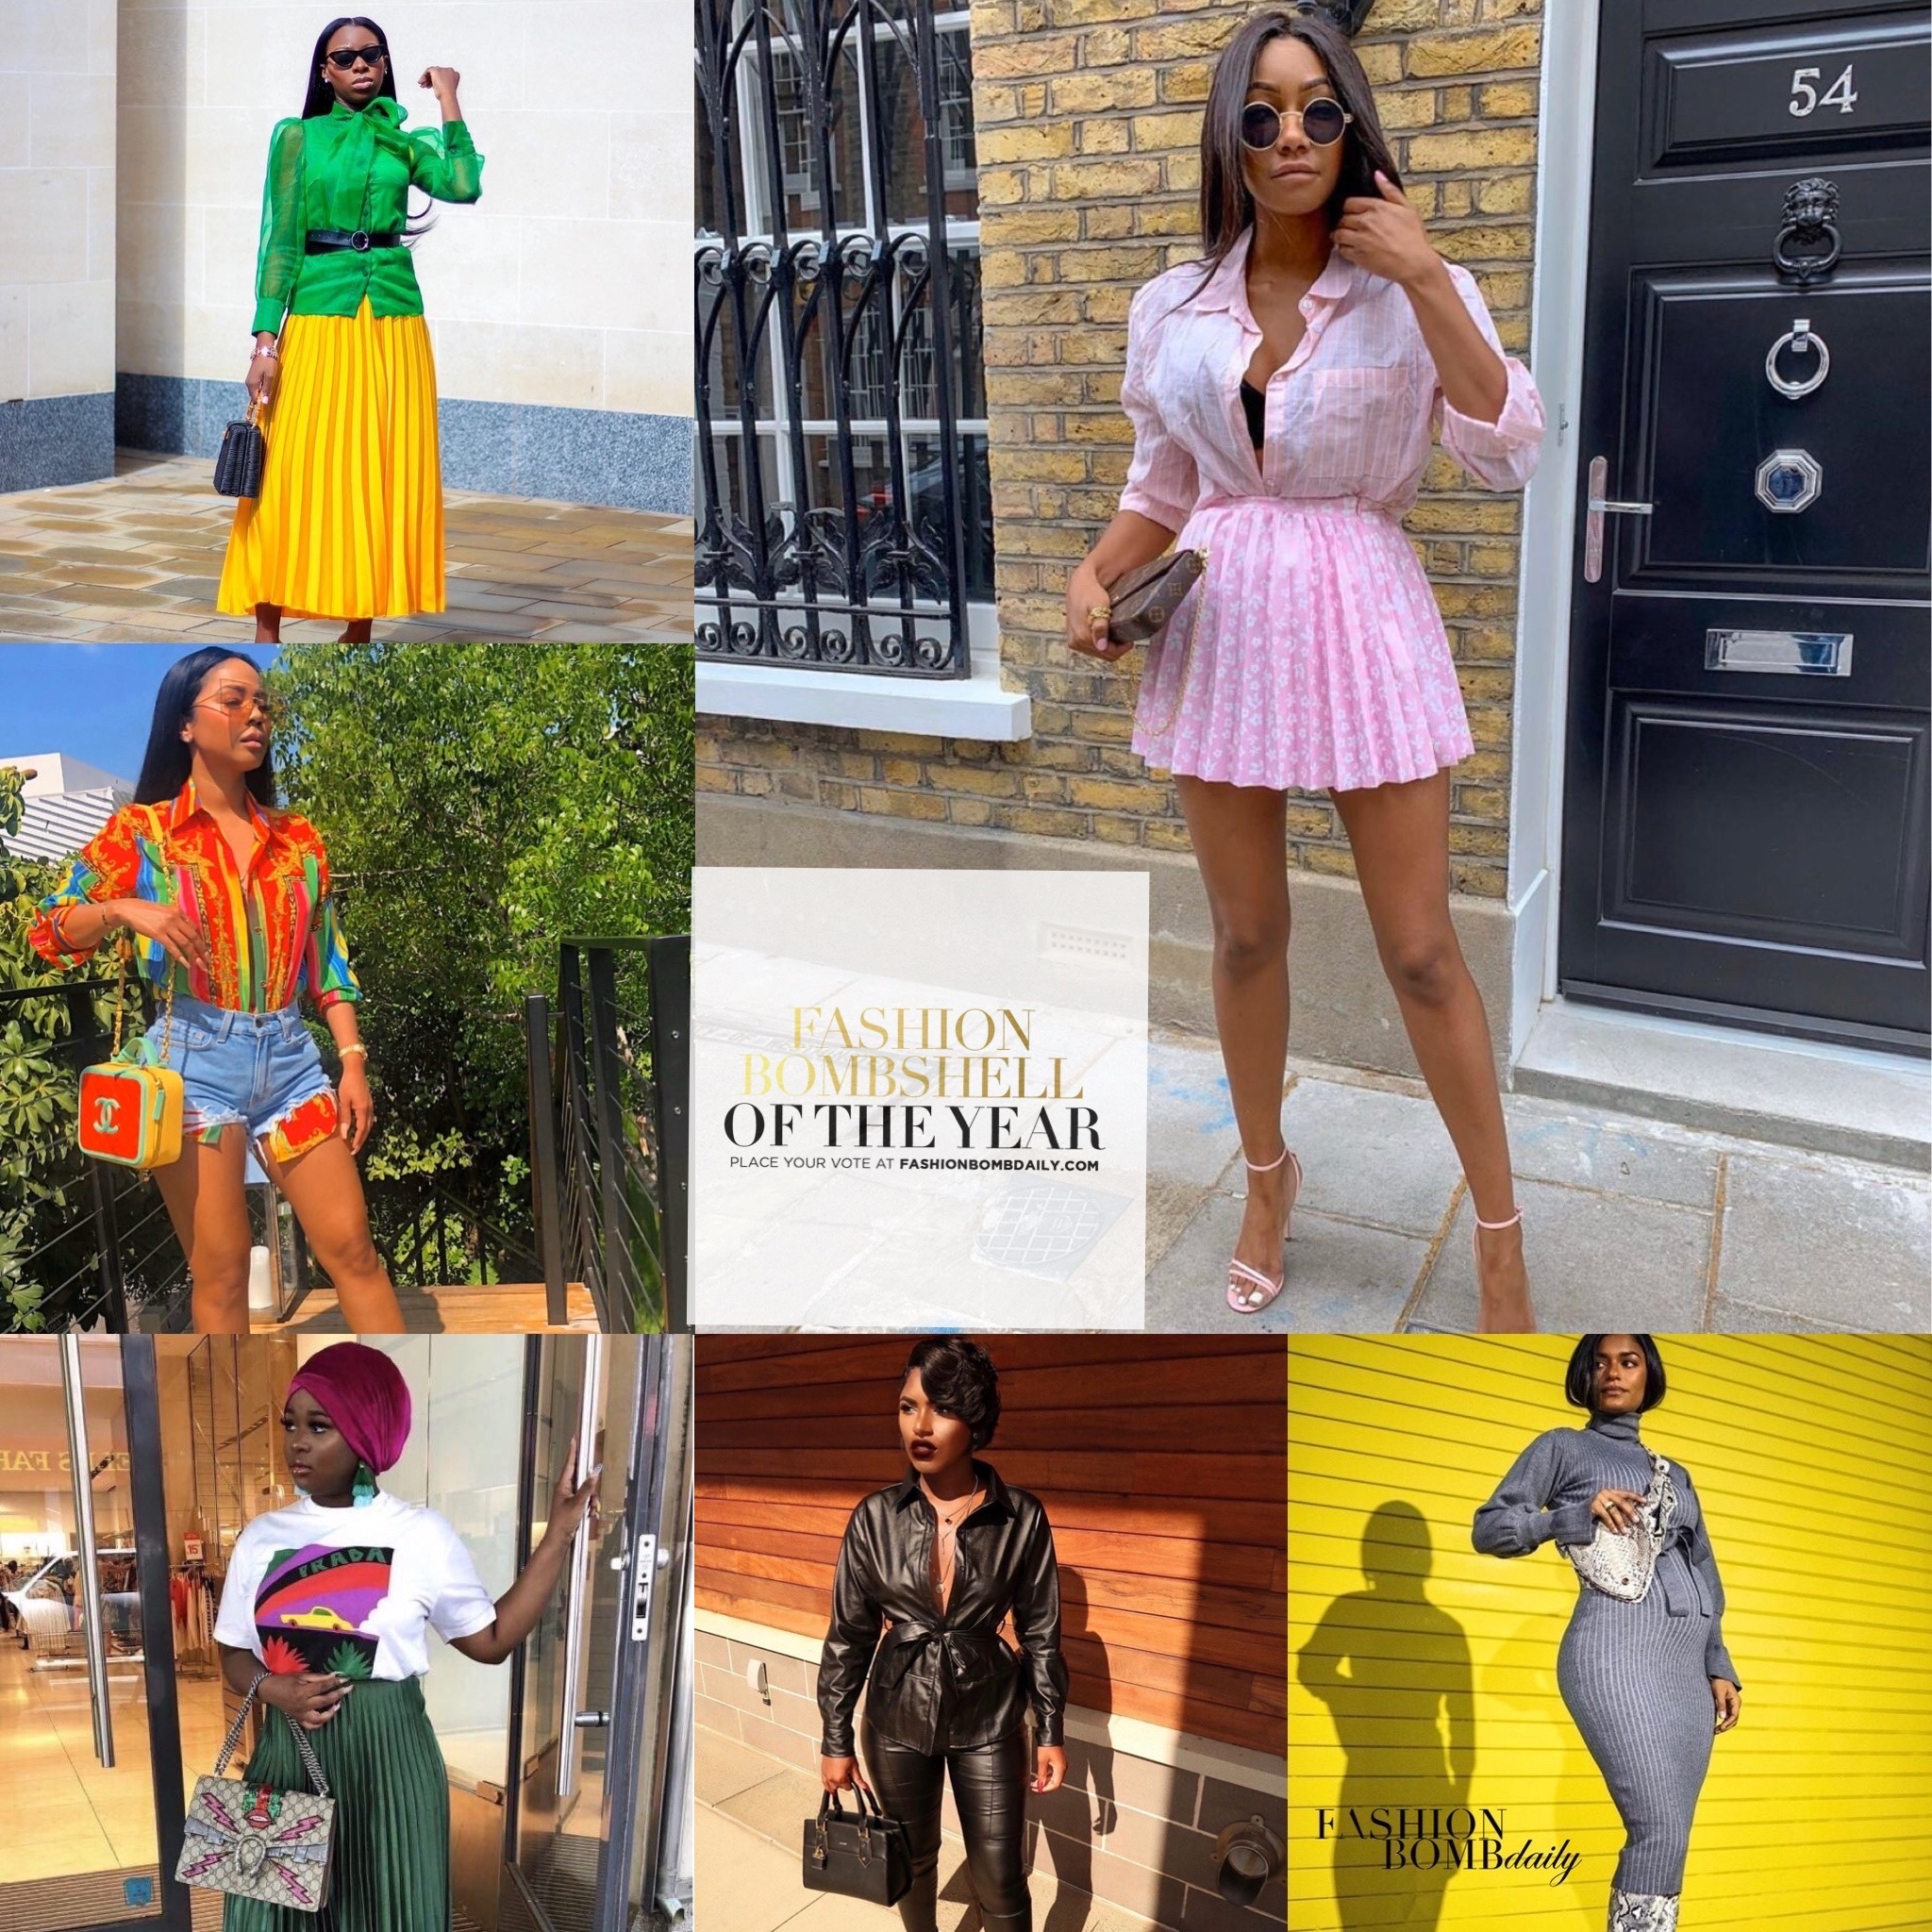 Best of 4: Fashion Bombshell of the Year Featuring Charlie from